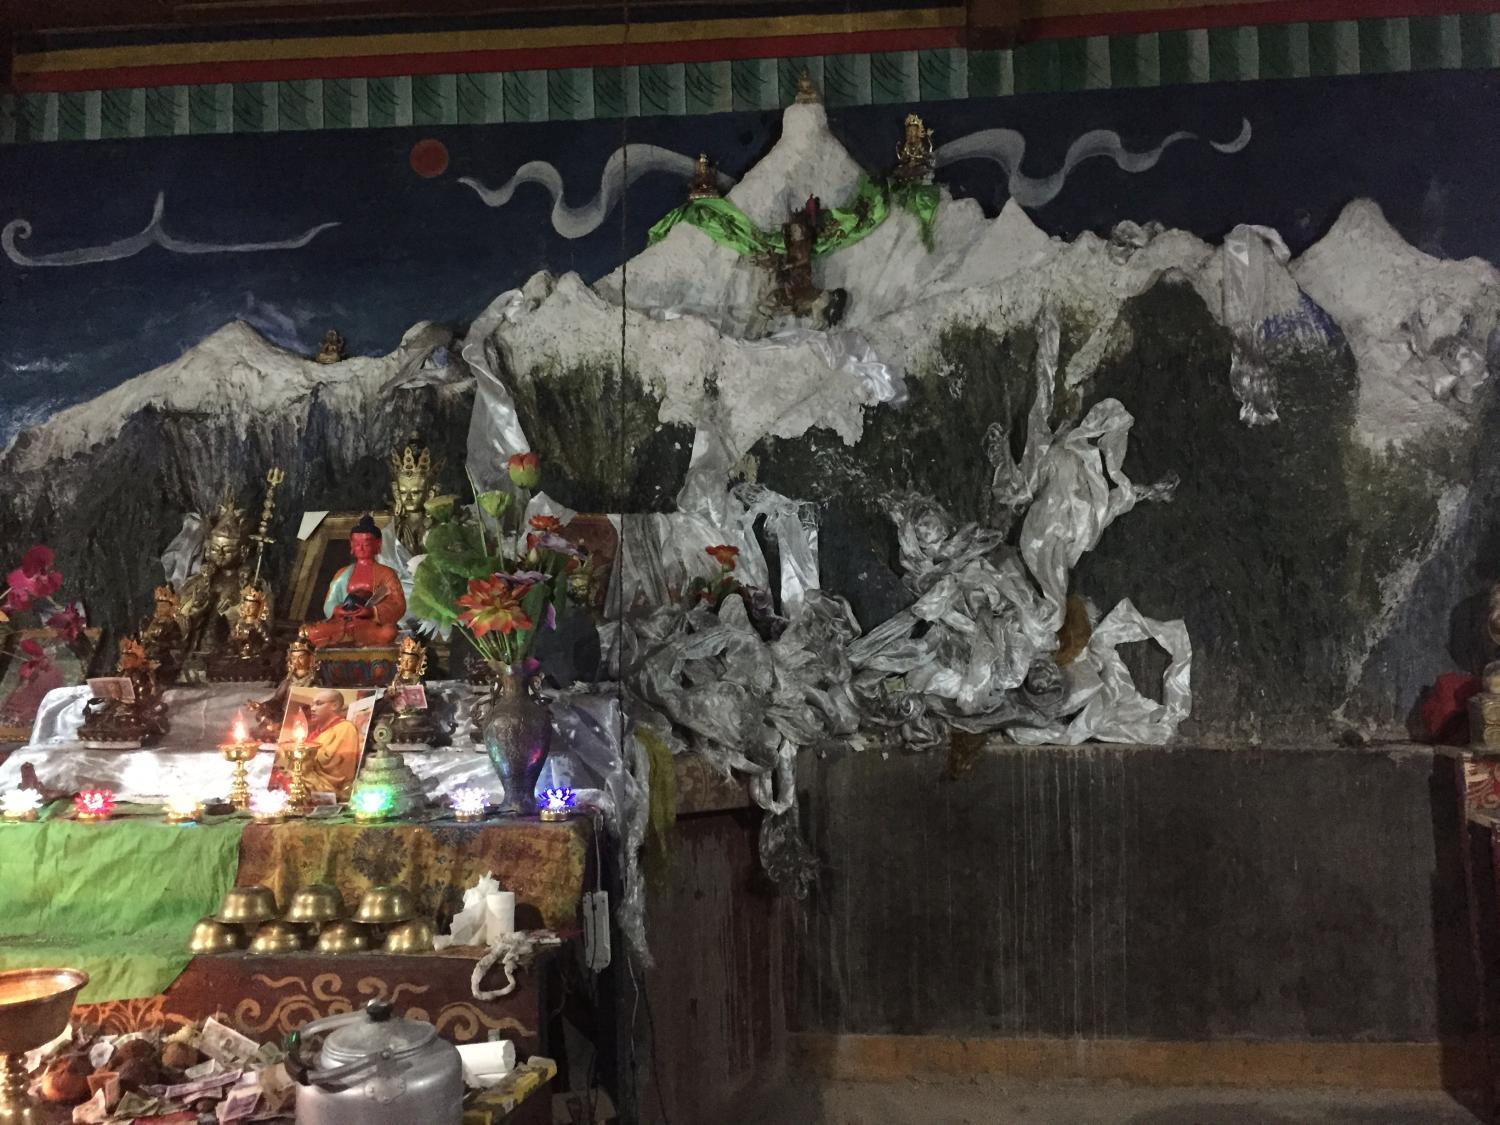 Sonam Norbu built a small temple, in which is this wall sculpture of the entire mountain range around Khawakarbo, to atone for his past sins as a hunter. It is located by a remarkable old grove of ancient cypress trees on the banks of the Mekong River at the edge of Bu Village.